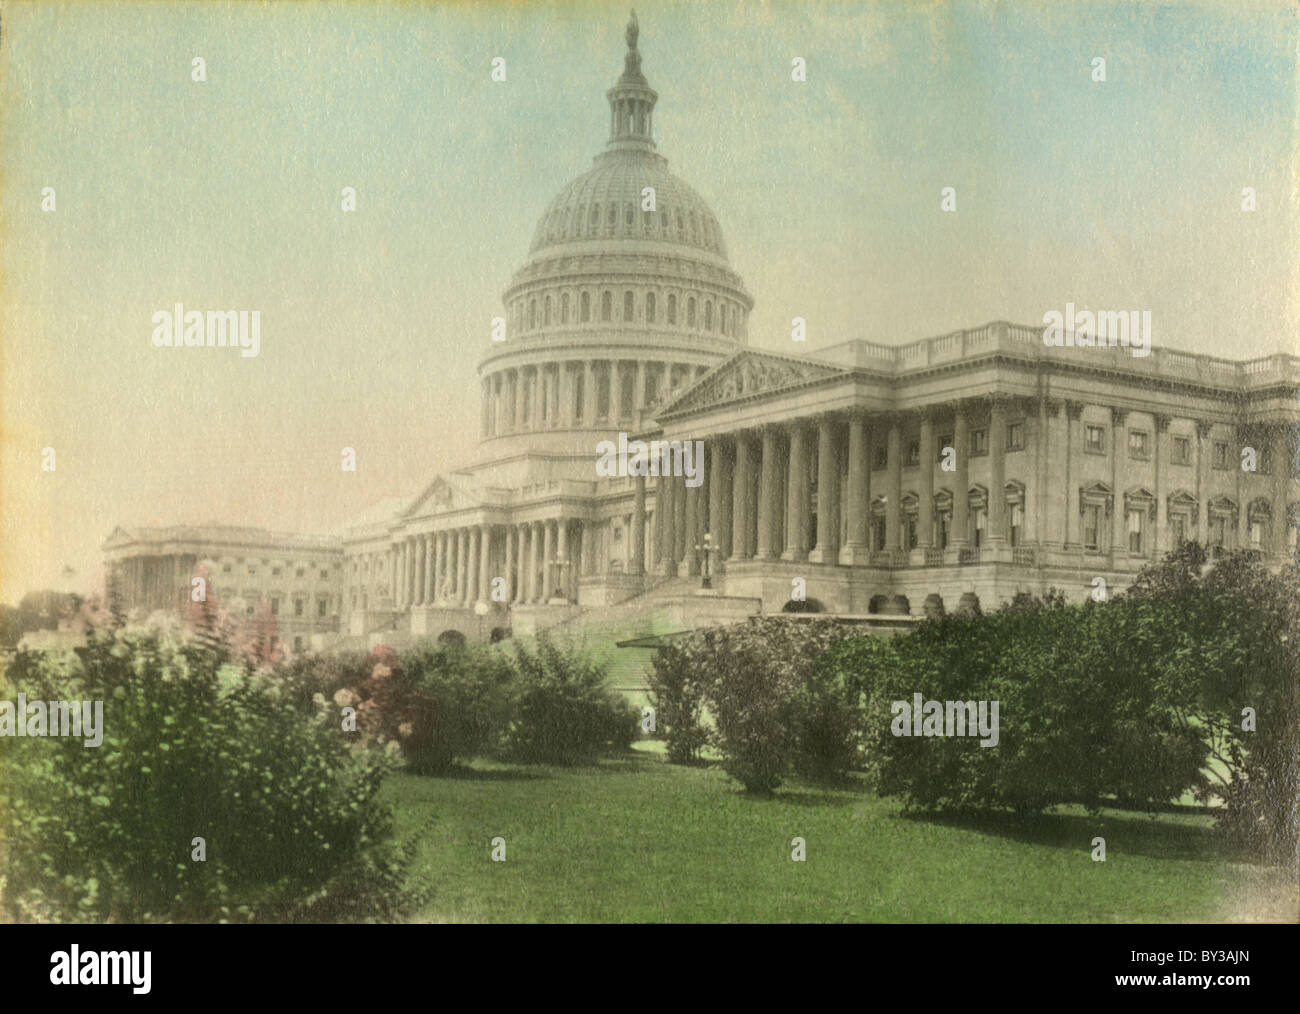 Circa 1910s antique hand-tinted photograph of the US Capitol Building, Washington, DC. - Stock Image